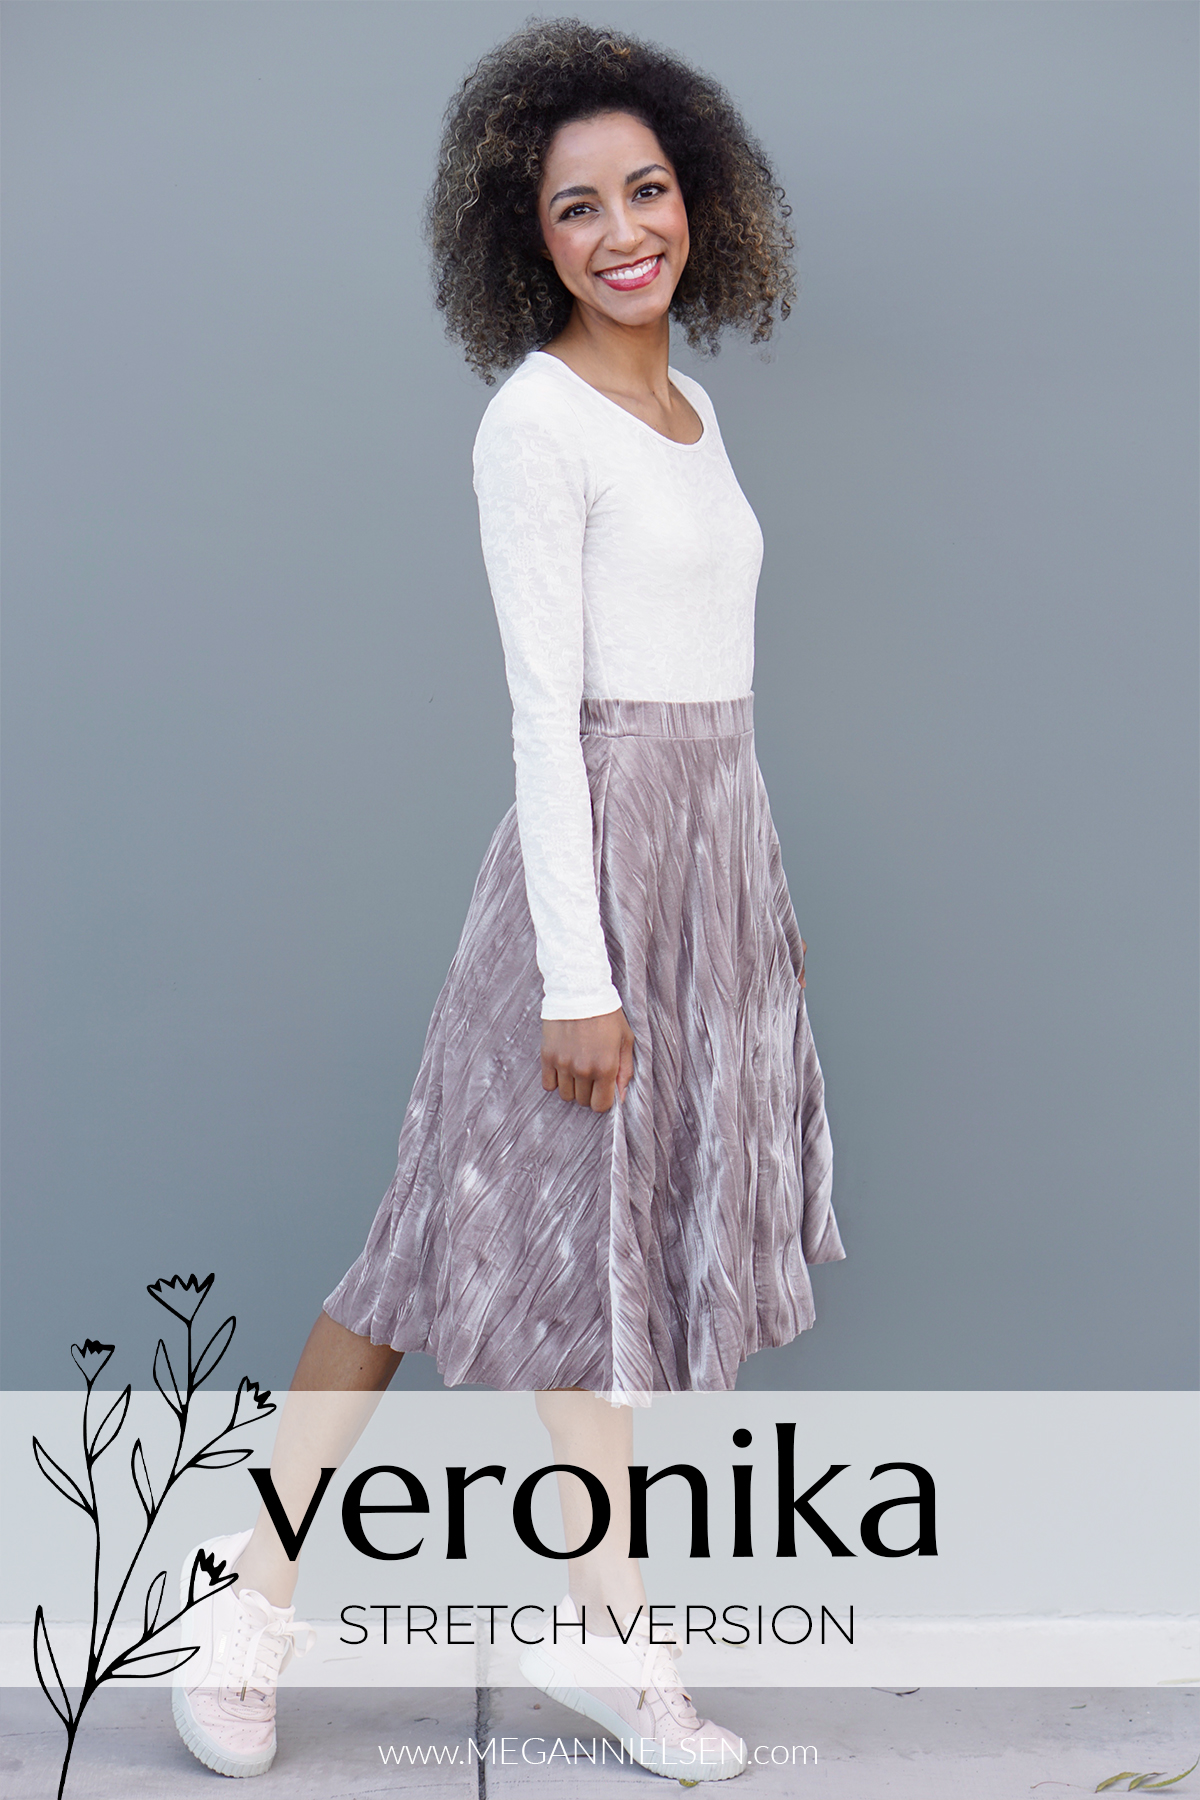 How to sew the stretch Veronika skirt